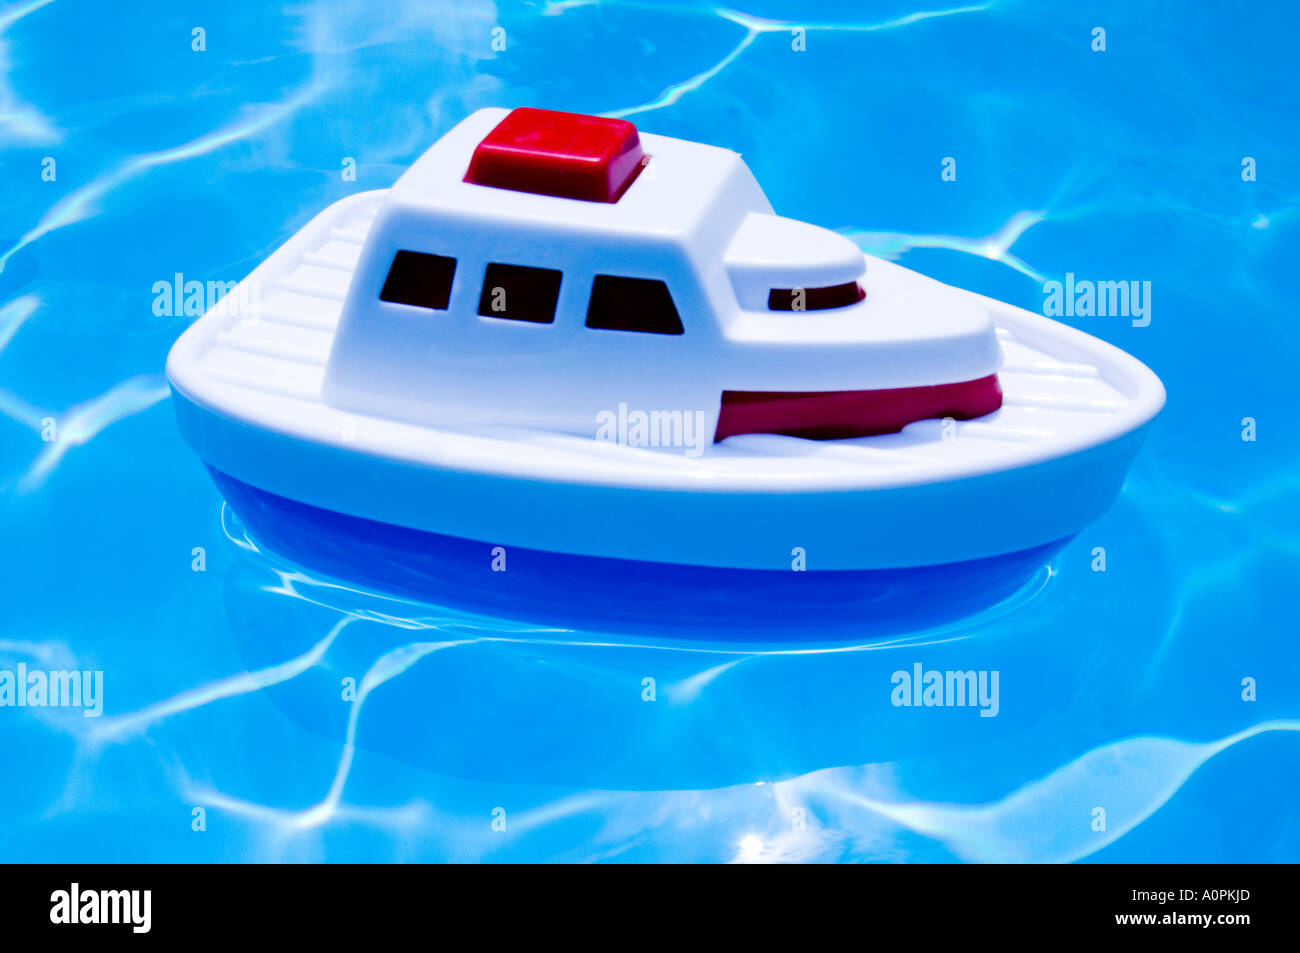 Toy Cruise Ship Floating In Swimming Pool Stock Photo Royalty - Toy cruise ship